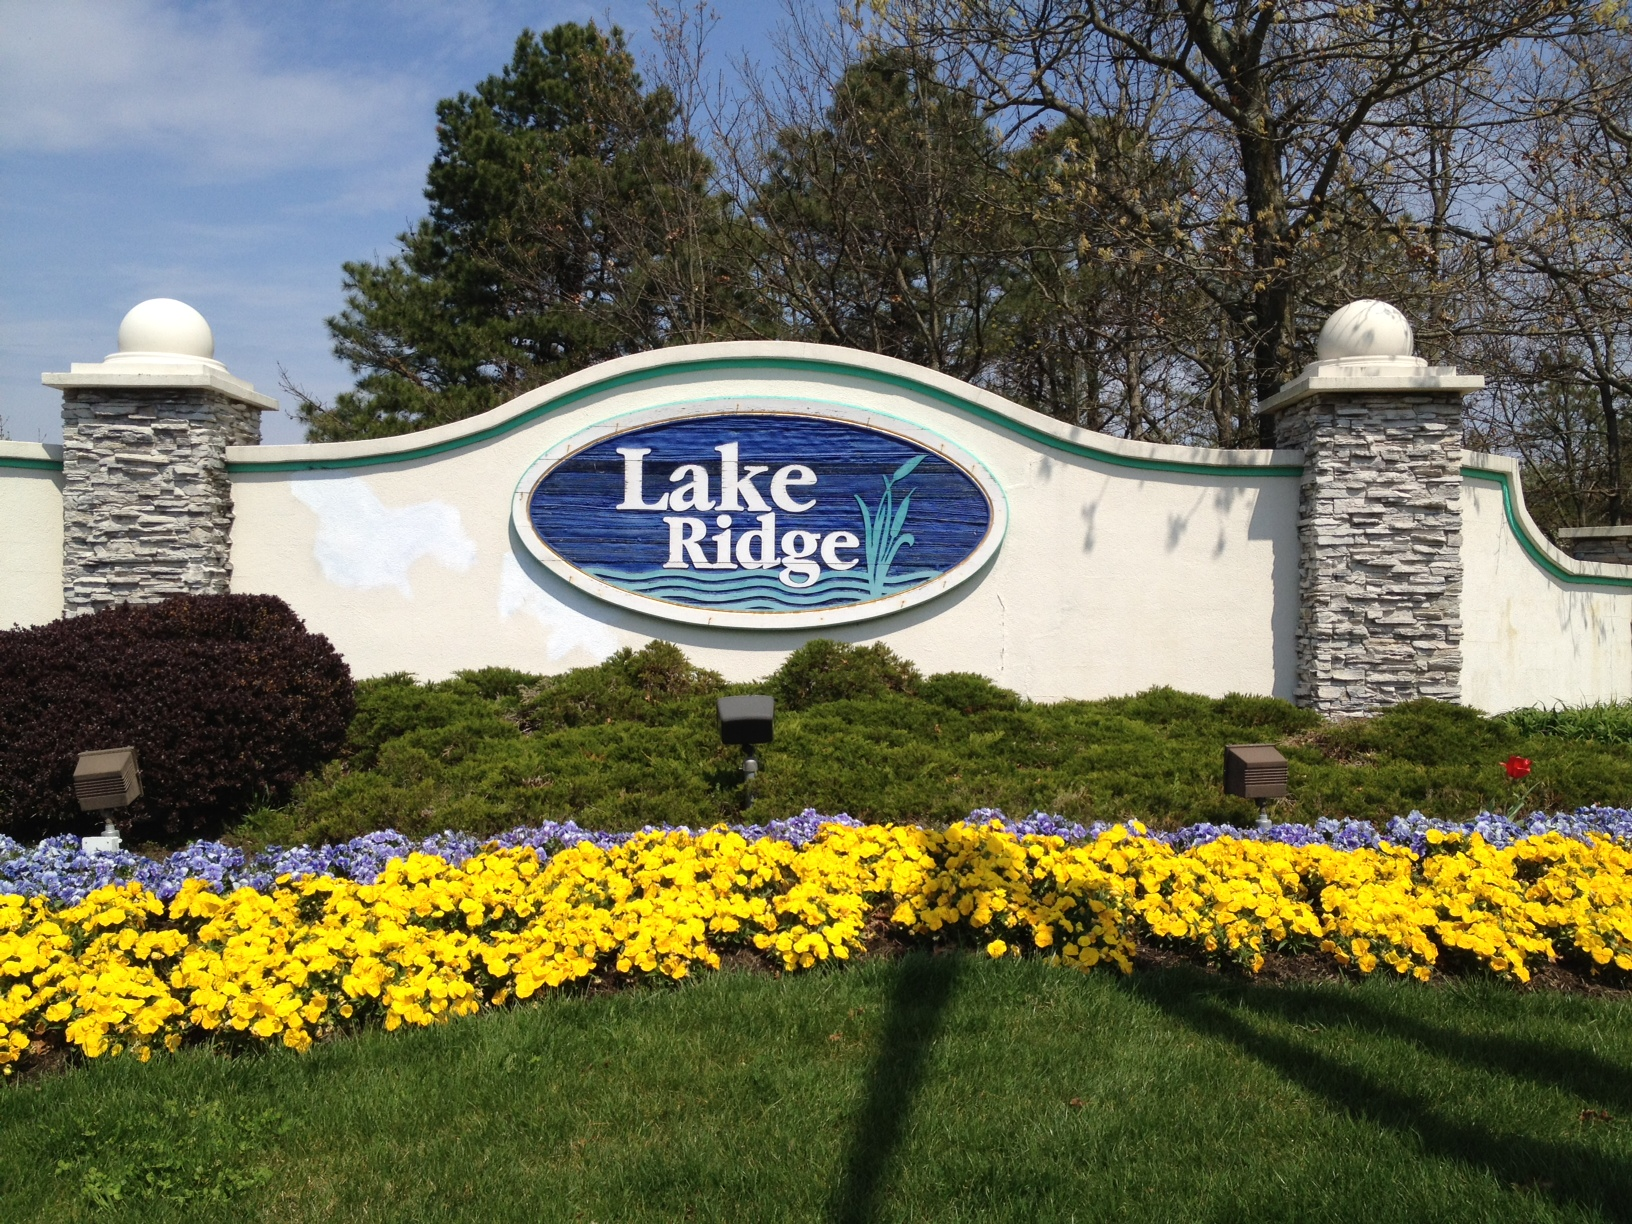 lake ridge homes for sale in toms river nj. beautiful ideas. Home Design Ideas